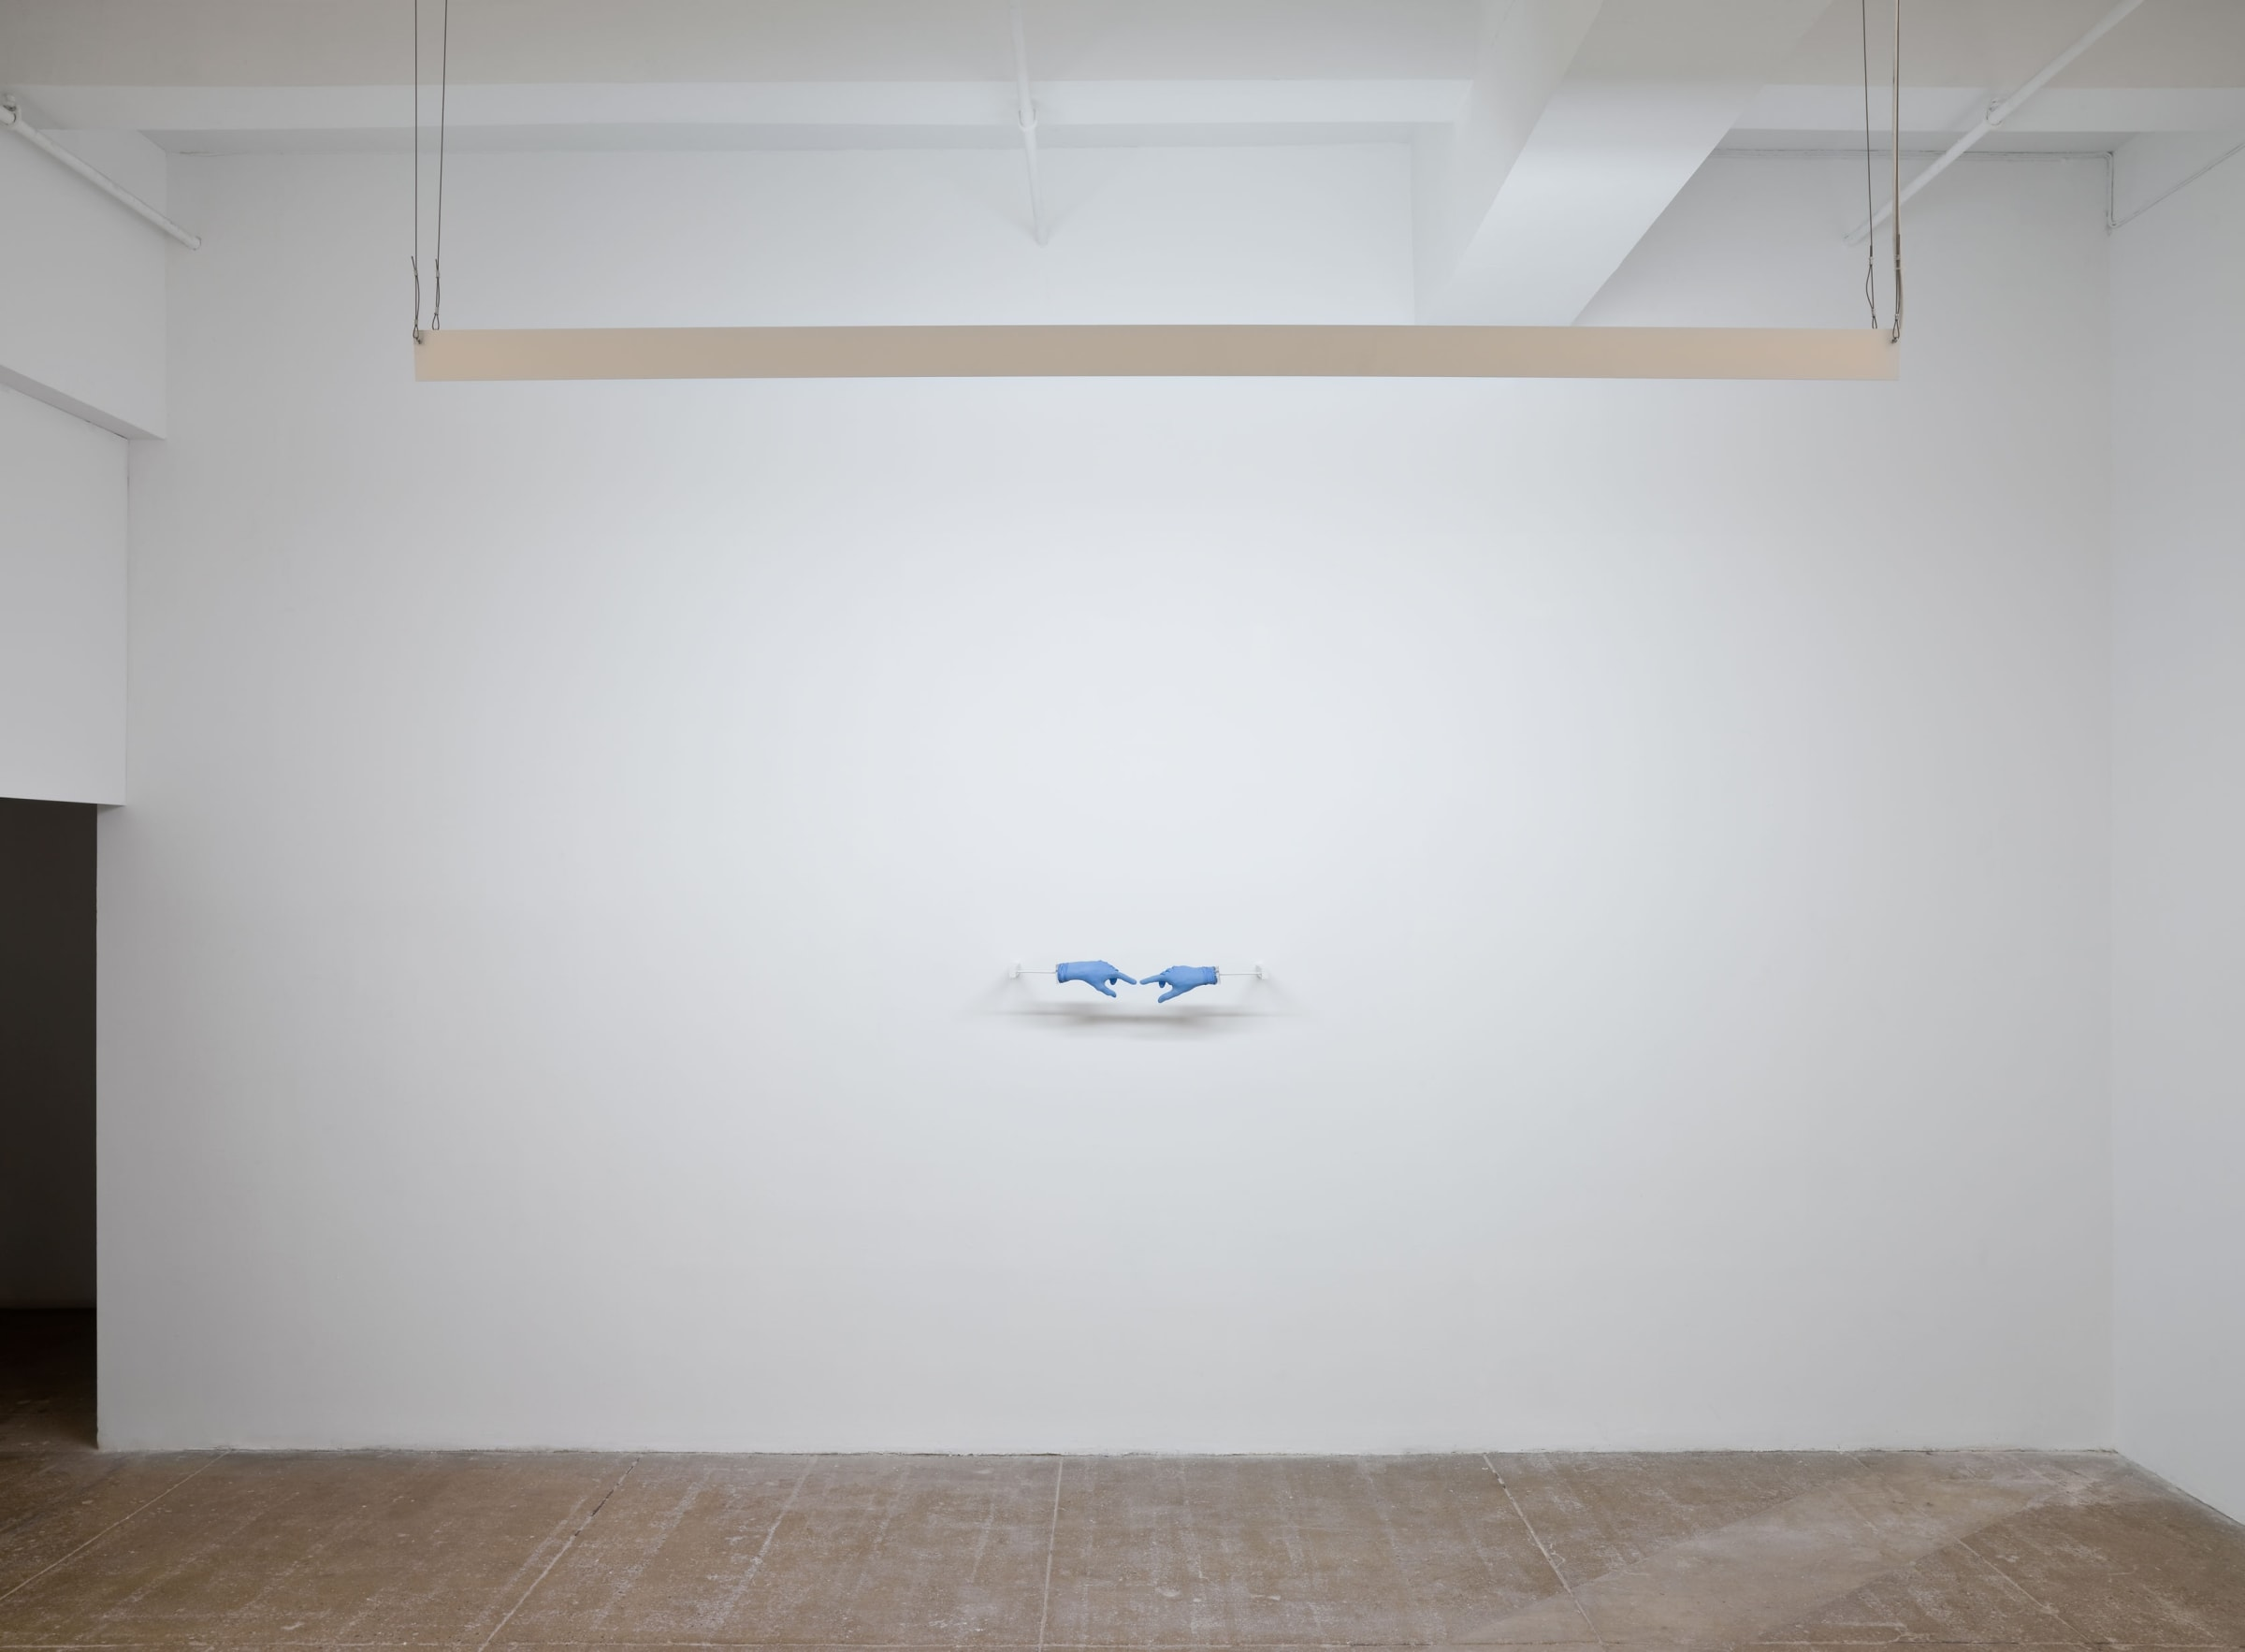 Two blue medical gloves stretched over plaster hands are seen pointing towards each other from a distance in front of a white wall. A fluorescent lamp hangs above them.